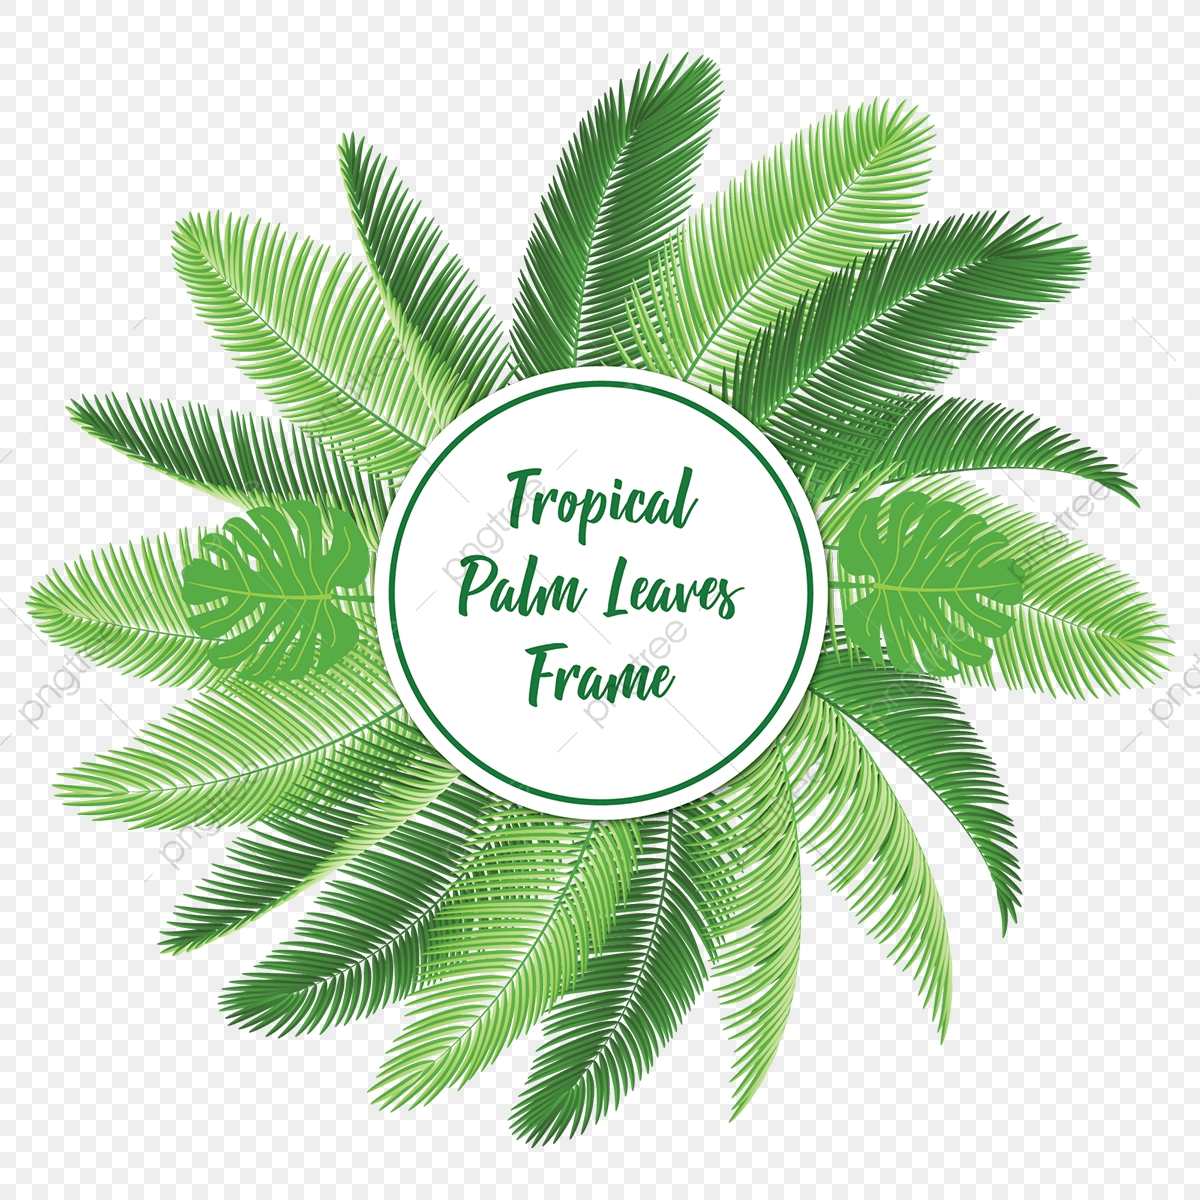 Tropical Palm Leaves Frame With Typography Tropical Leaf Palm Leaf Png And Vector With Transparent Background For Free Download Tropical jungle leaves frame on pink background vector. https pngtree com freepng tropical palm leaves frame with typography 3556306 html